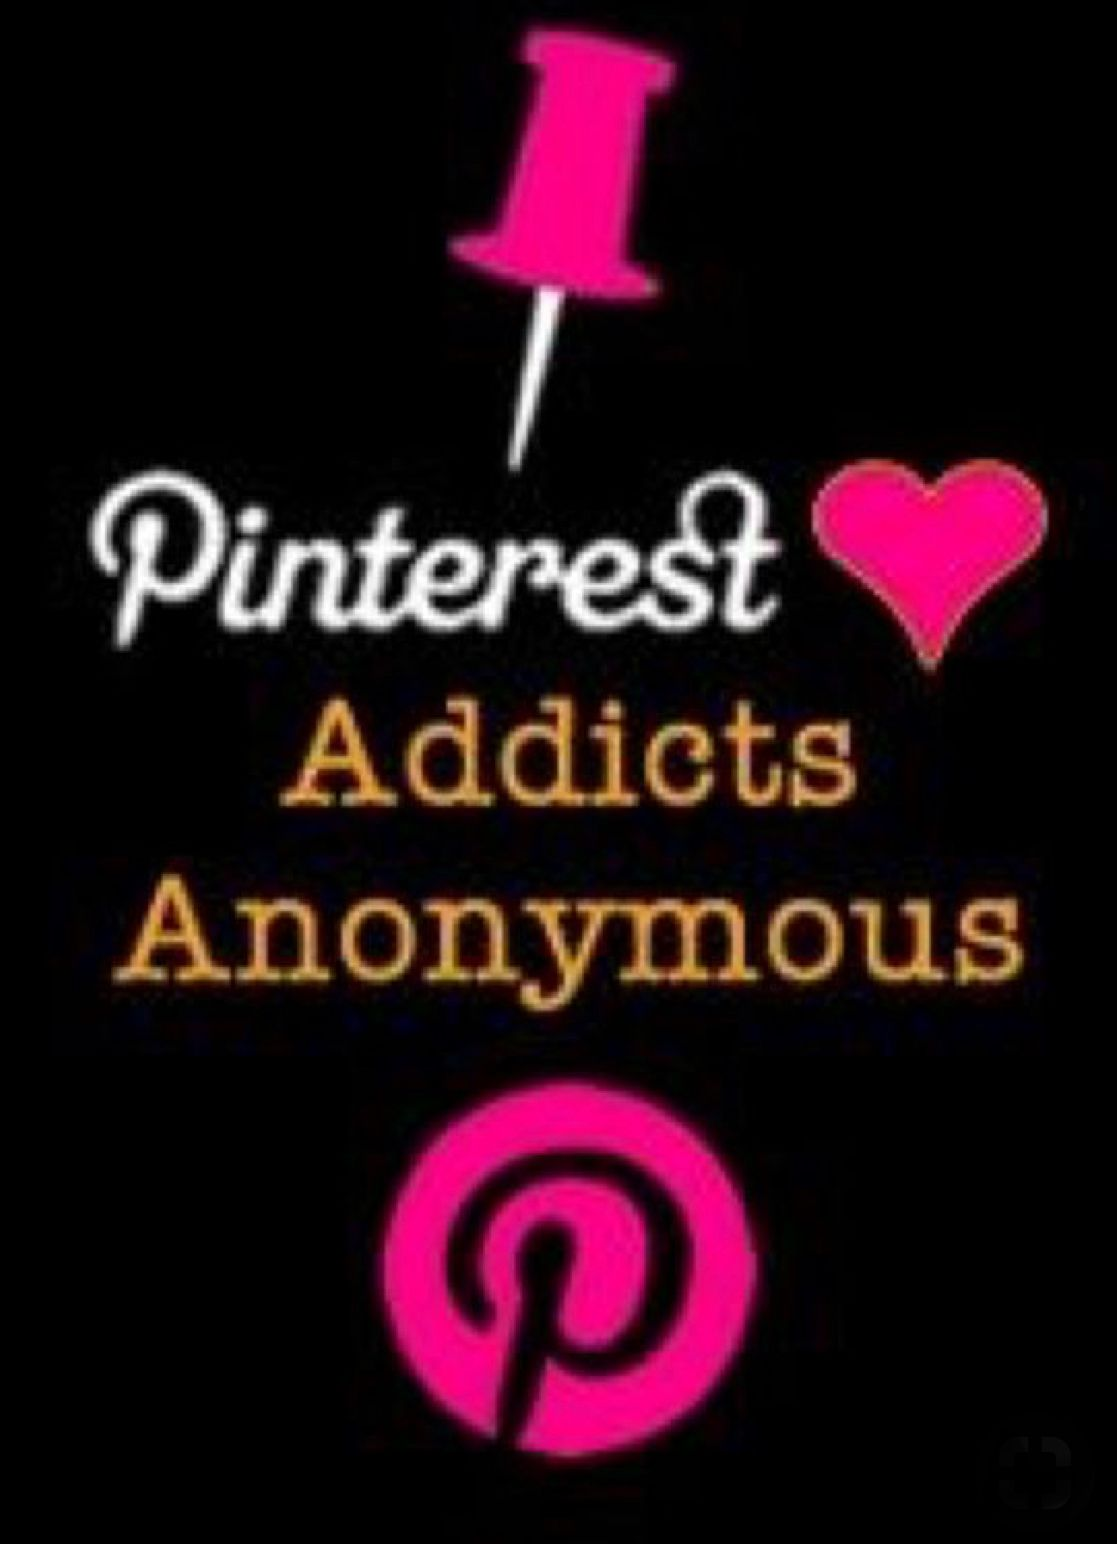 Pin by Dee McDaniel on Pinterest pins Funny quotes